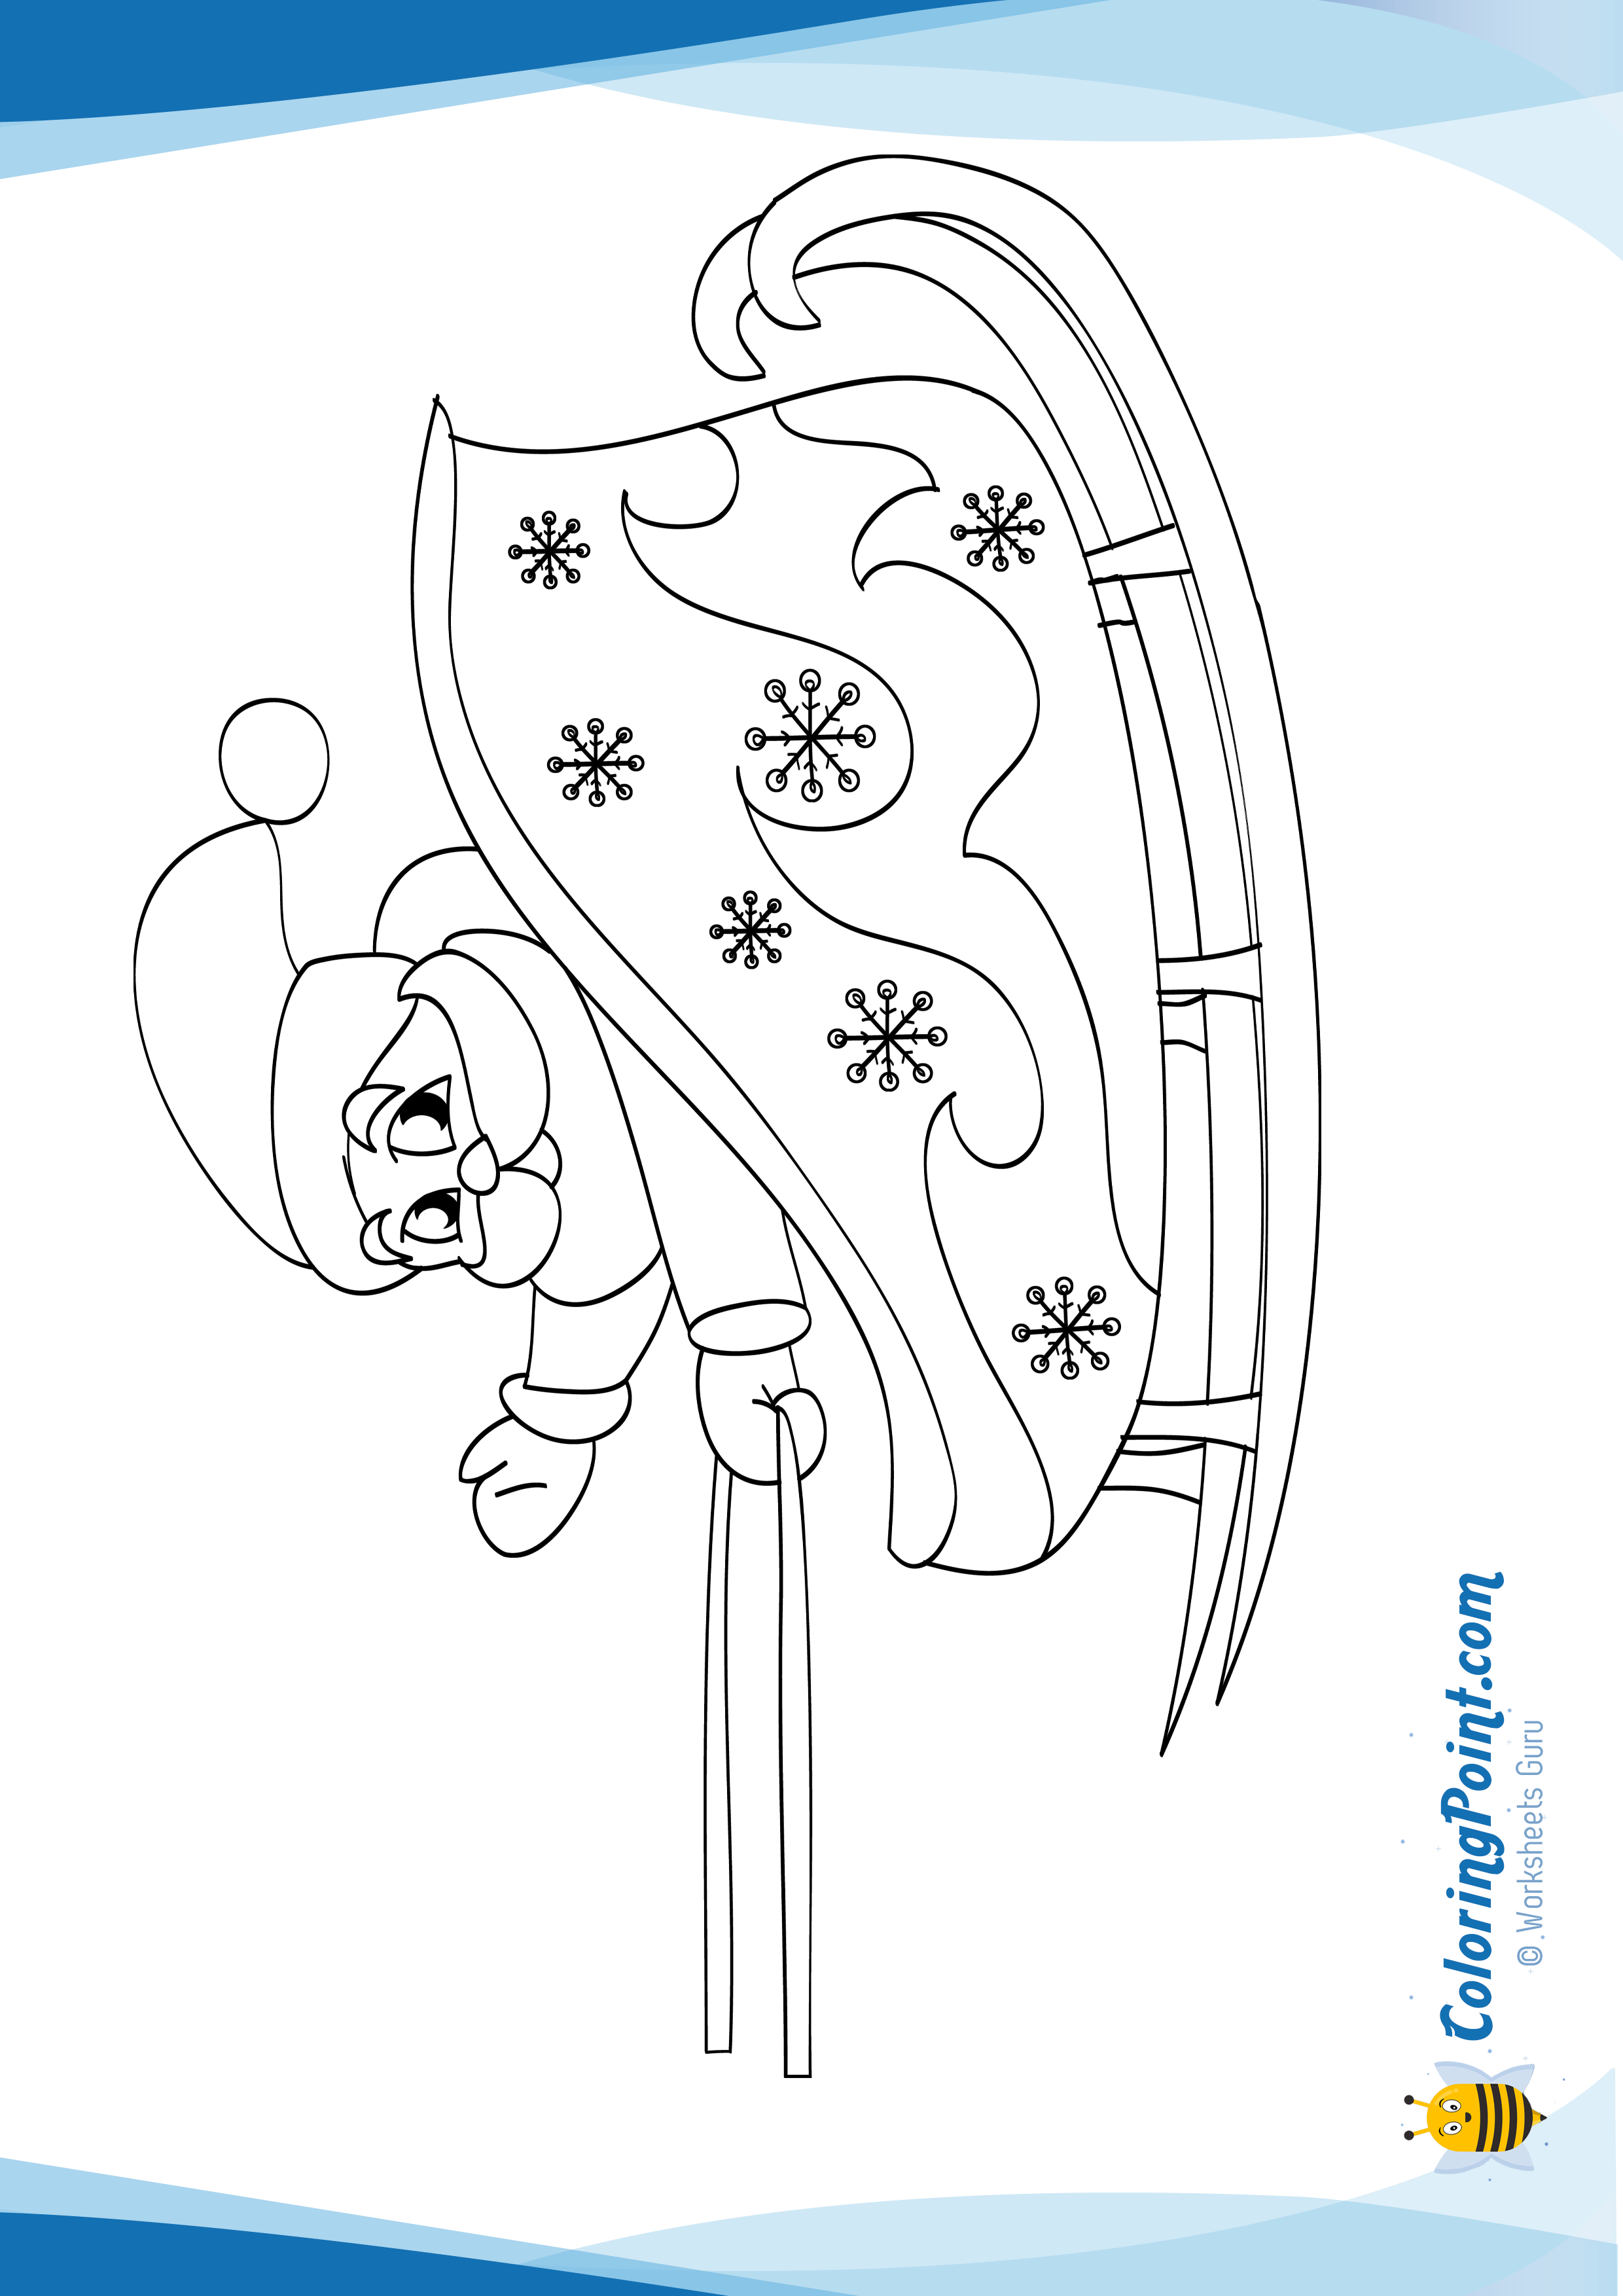 Santa Sleigh Coloring Page With Claus On His There Is A New